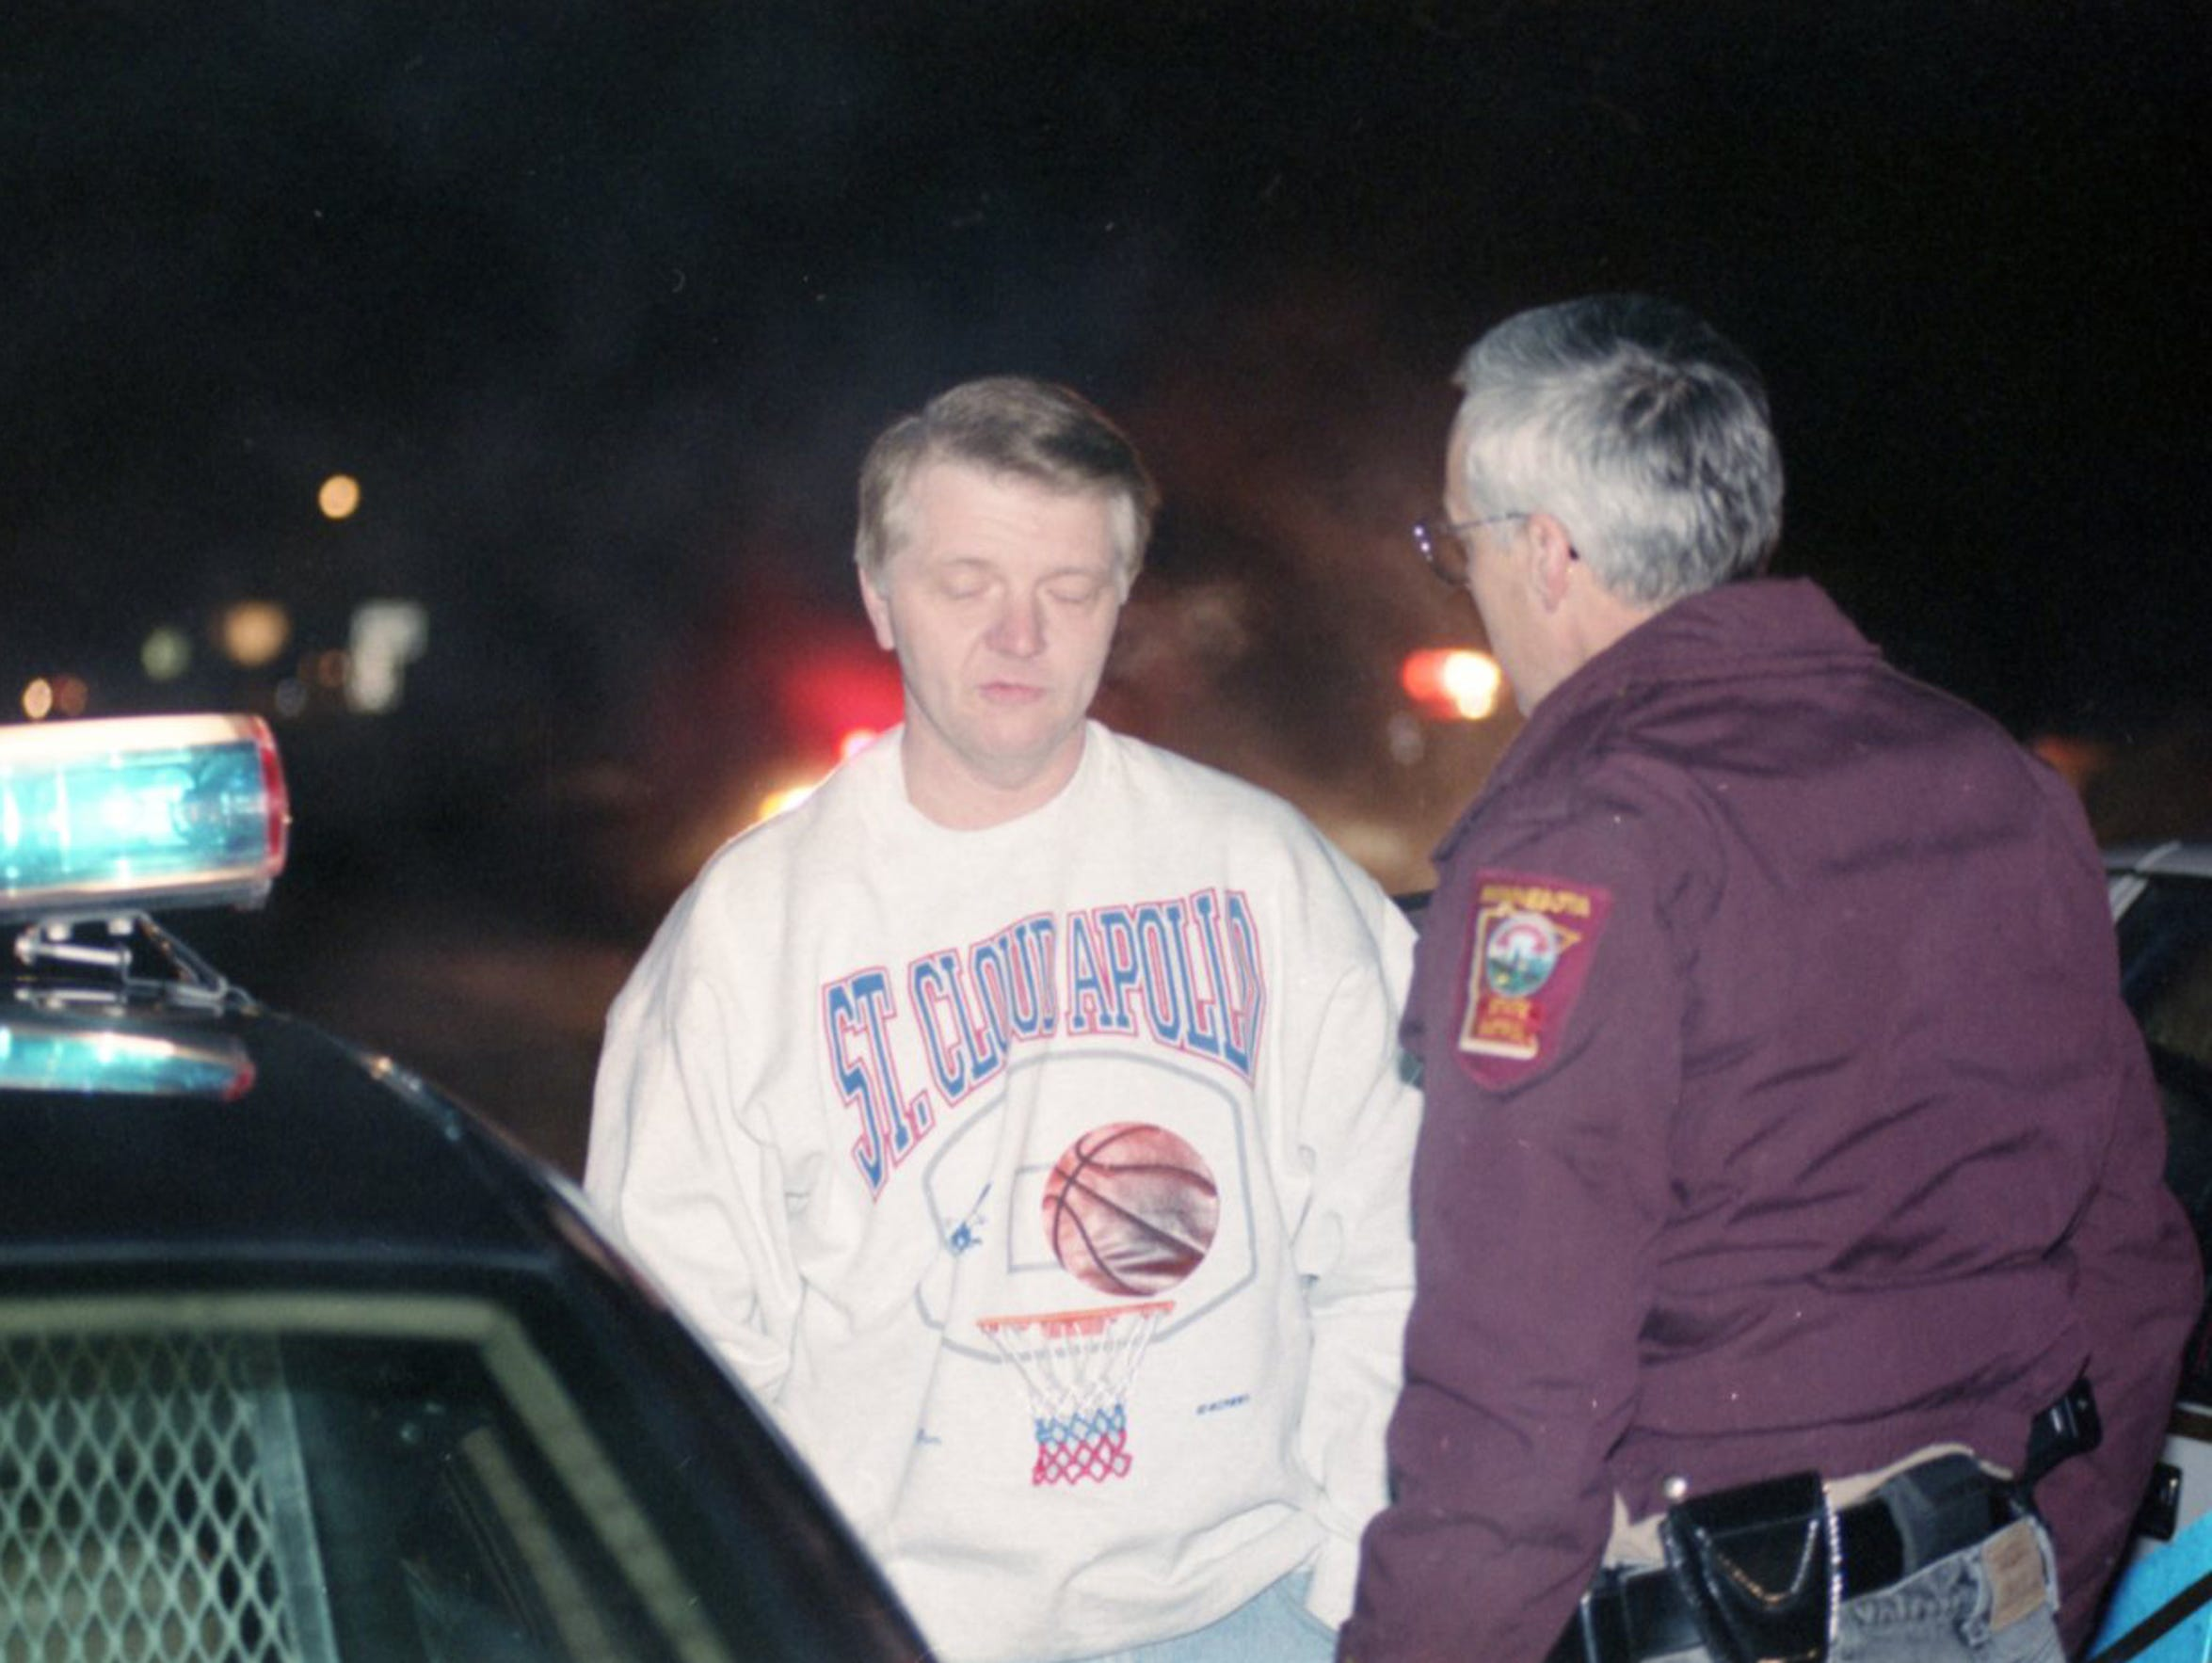 Doug Thomsen is rescued after being taken hostage in